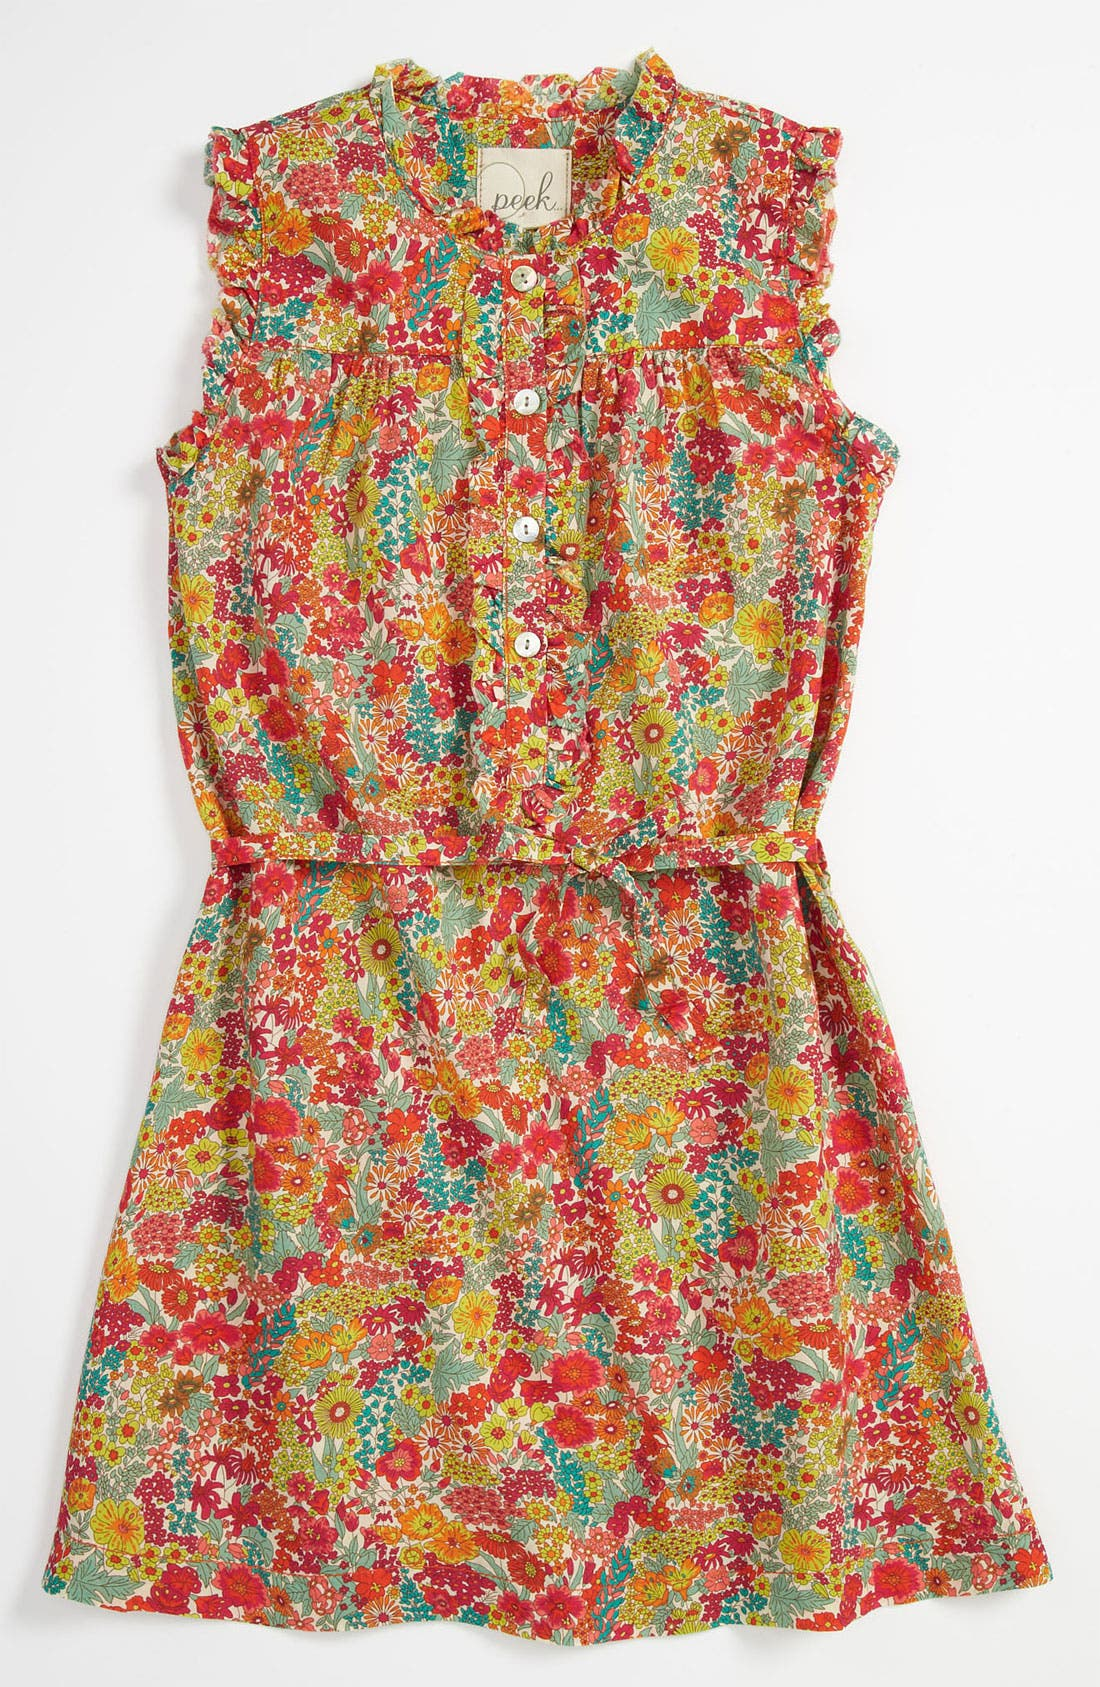 Alternate Image 1 Selected - Peek 'Liberty Print Kinsey' Tunic (Toddler, Little Girls & Big Girls)